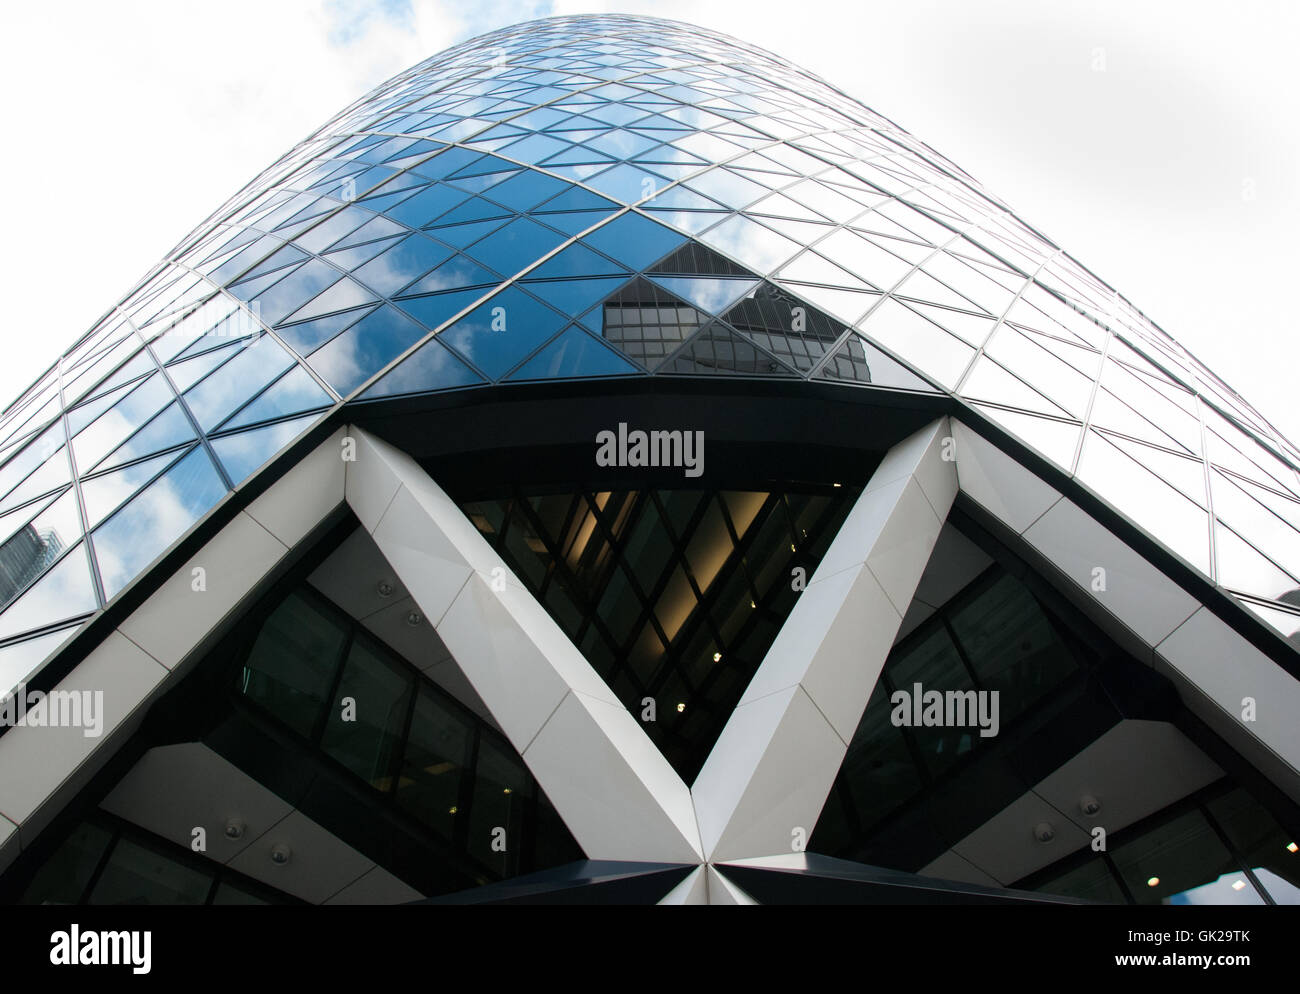 London, England UK. 07 march, 2016. The skyscraper 30 St Mary Axe known as «The Gherkin» seen from street level Stock Photo